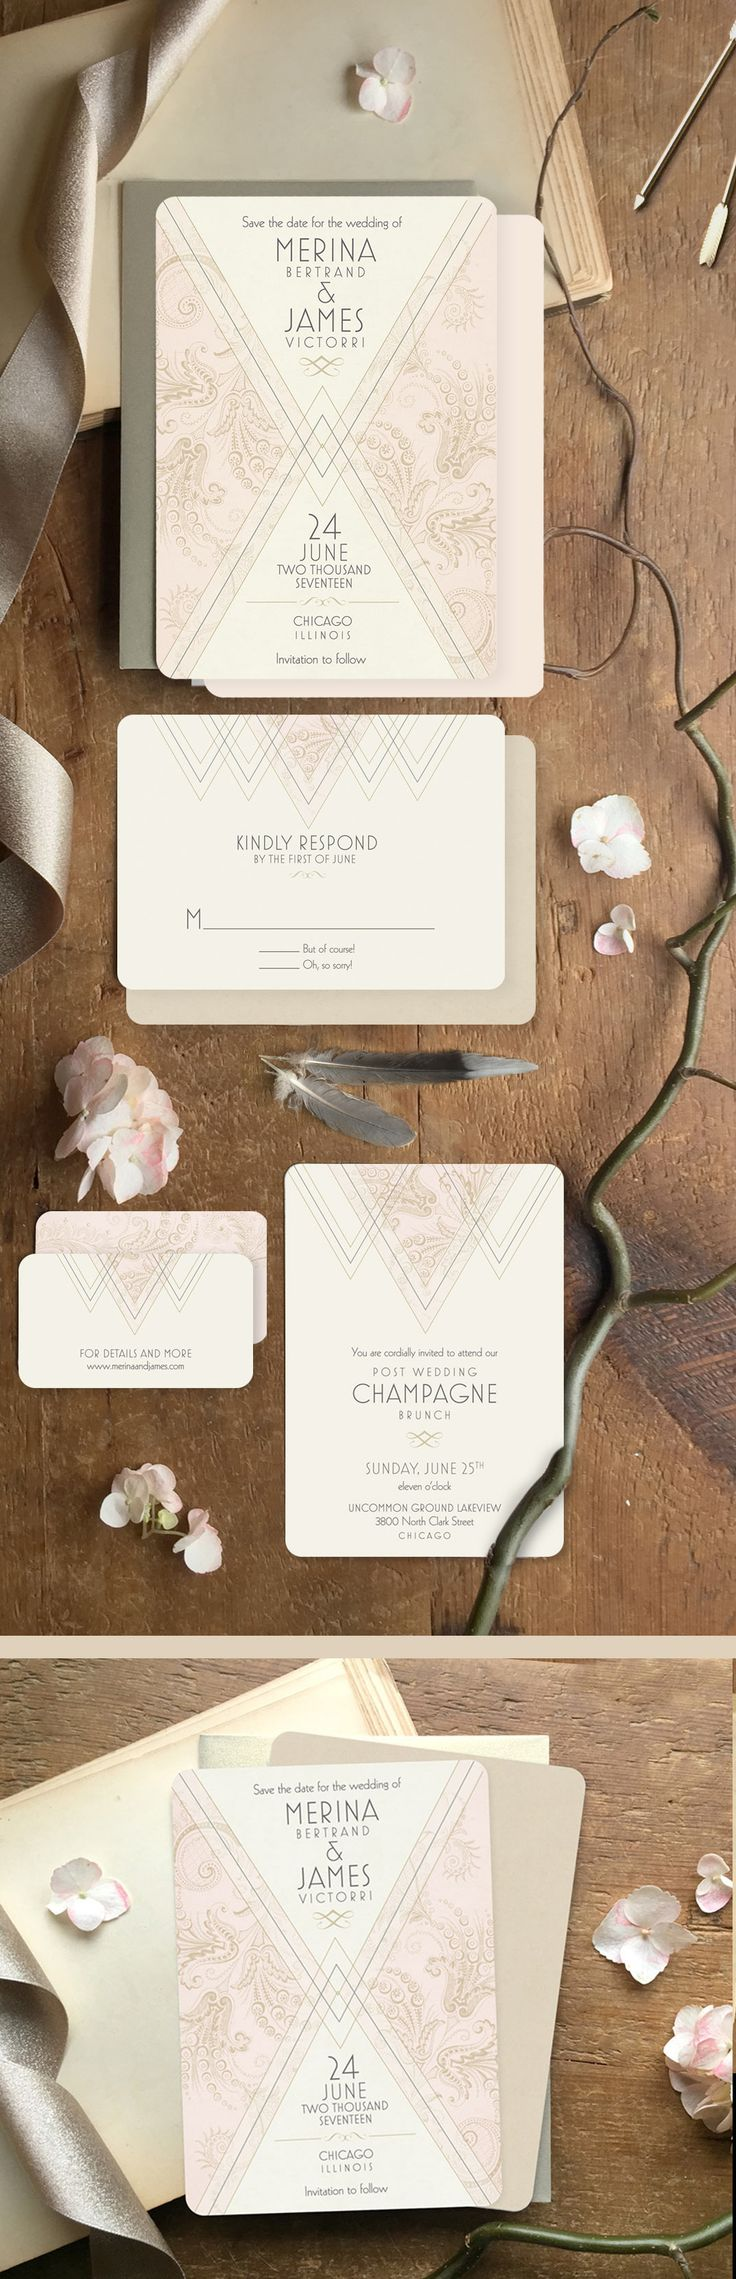 These oh-so Art Deco wedding invitations will surely add a unique spark to your big day! They can accommodate your custom wording and the subtle color accent can be changed to suit your big day. Available in a full wedding suite including invitations, menu's, hand fans, thank you's and Save the Dates.